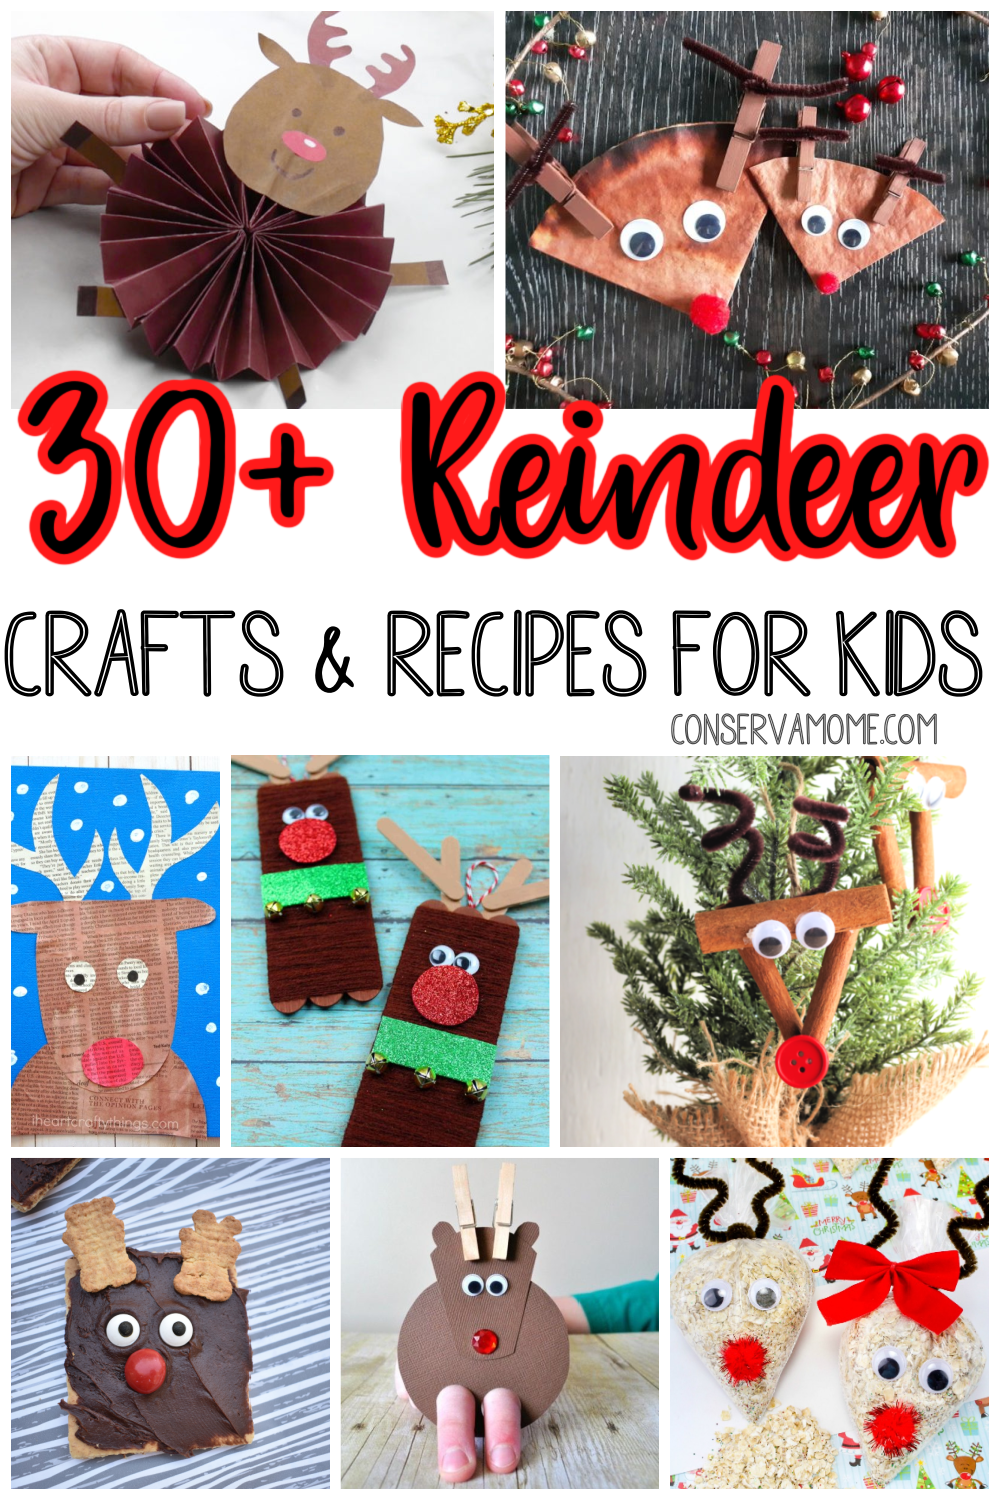 Reindeer crafts and recipes for kids